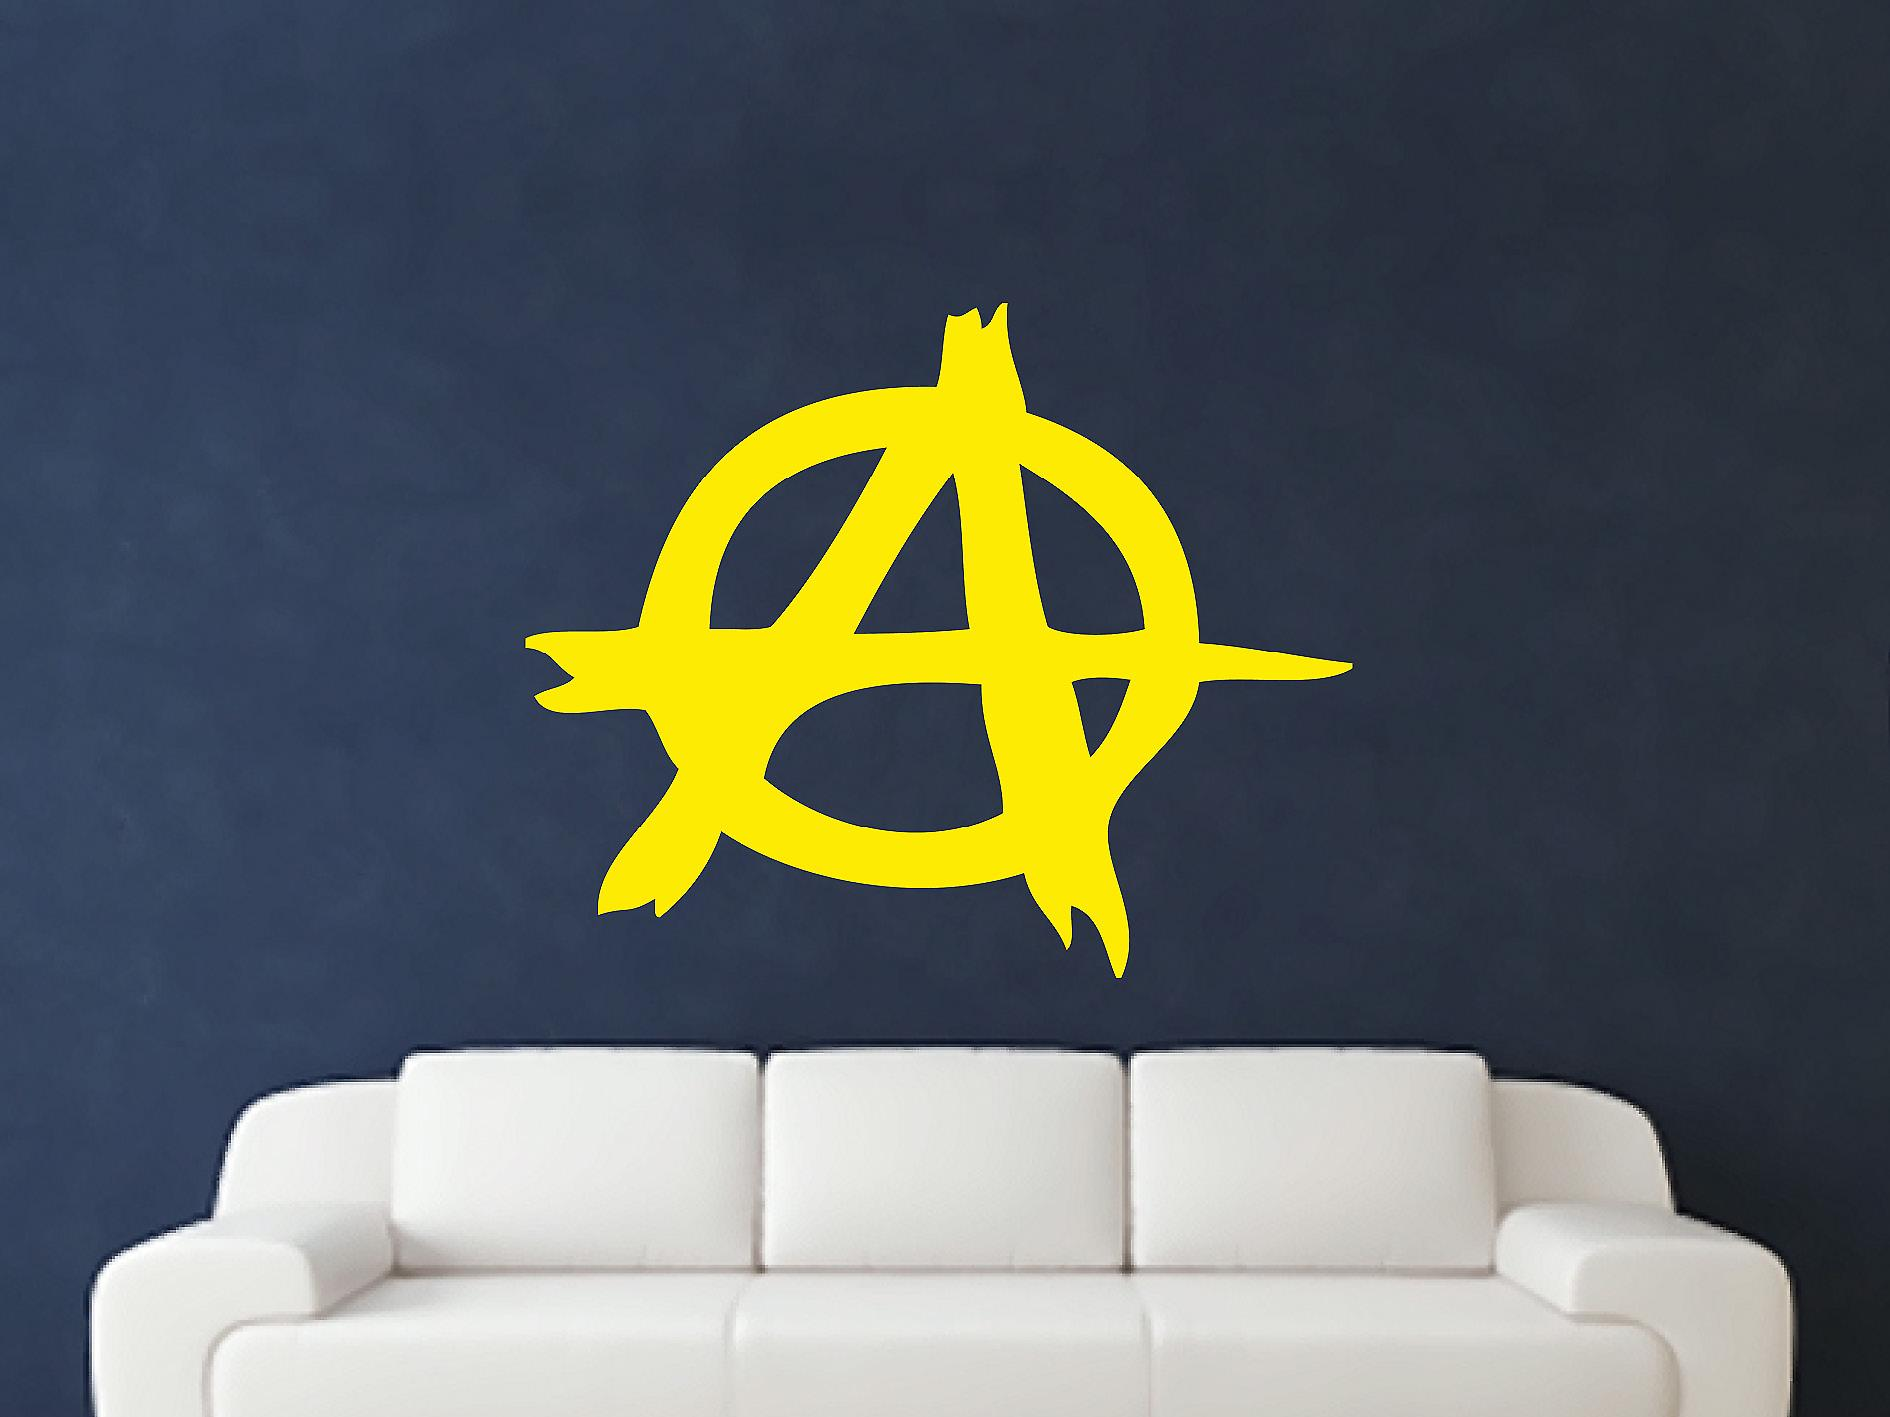 Anarchy Symbol Wall Art Sticker - Bright Yellow